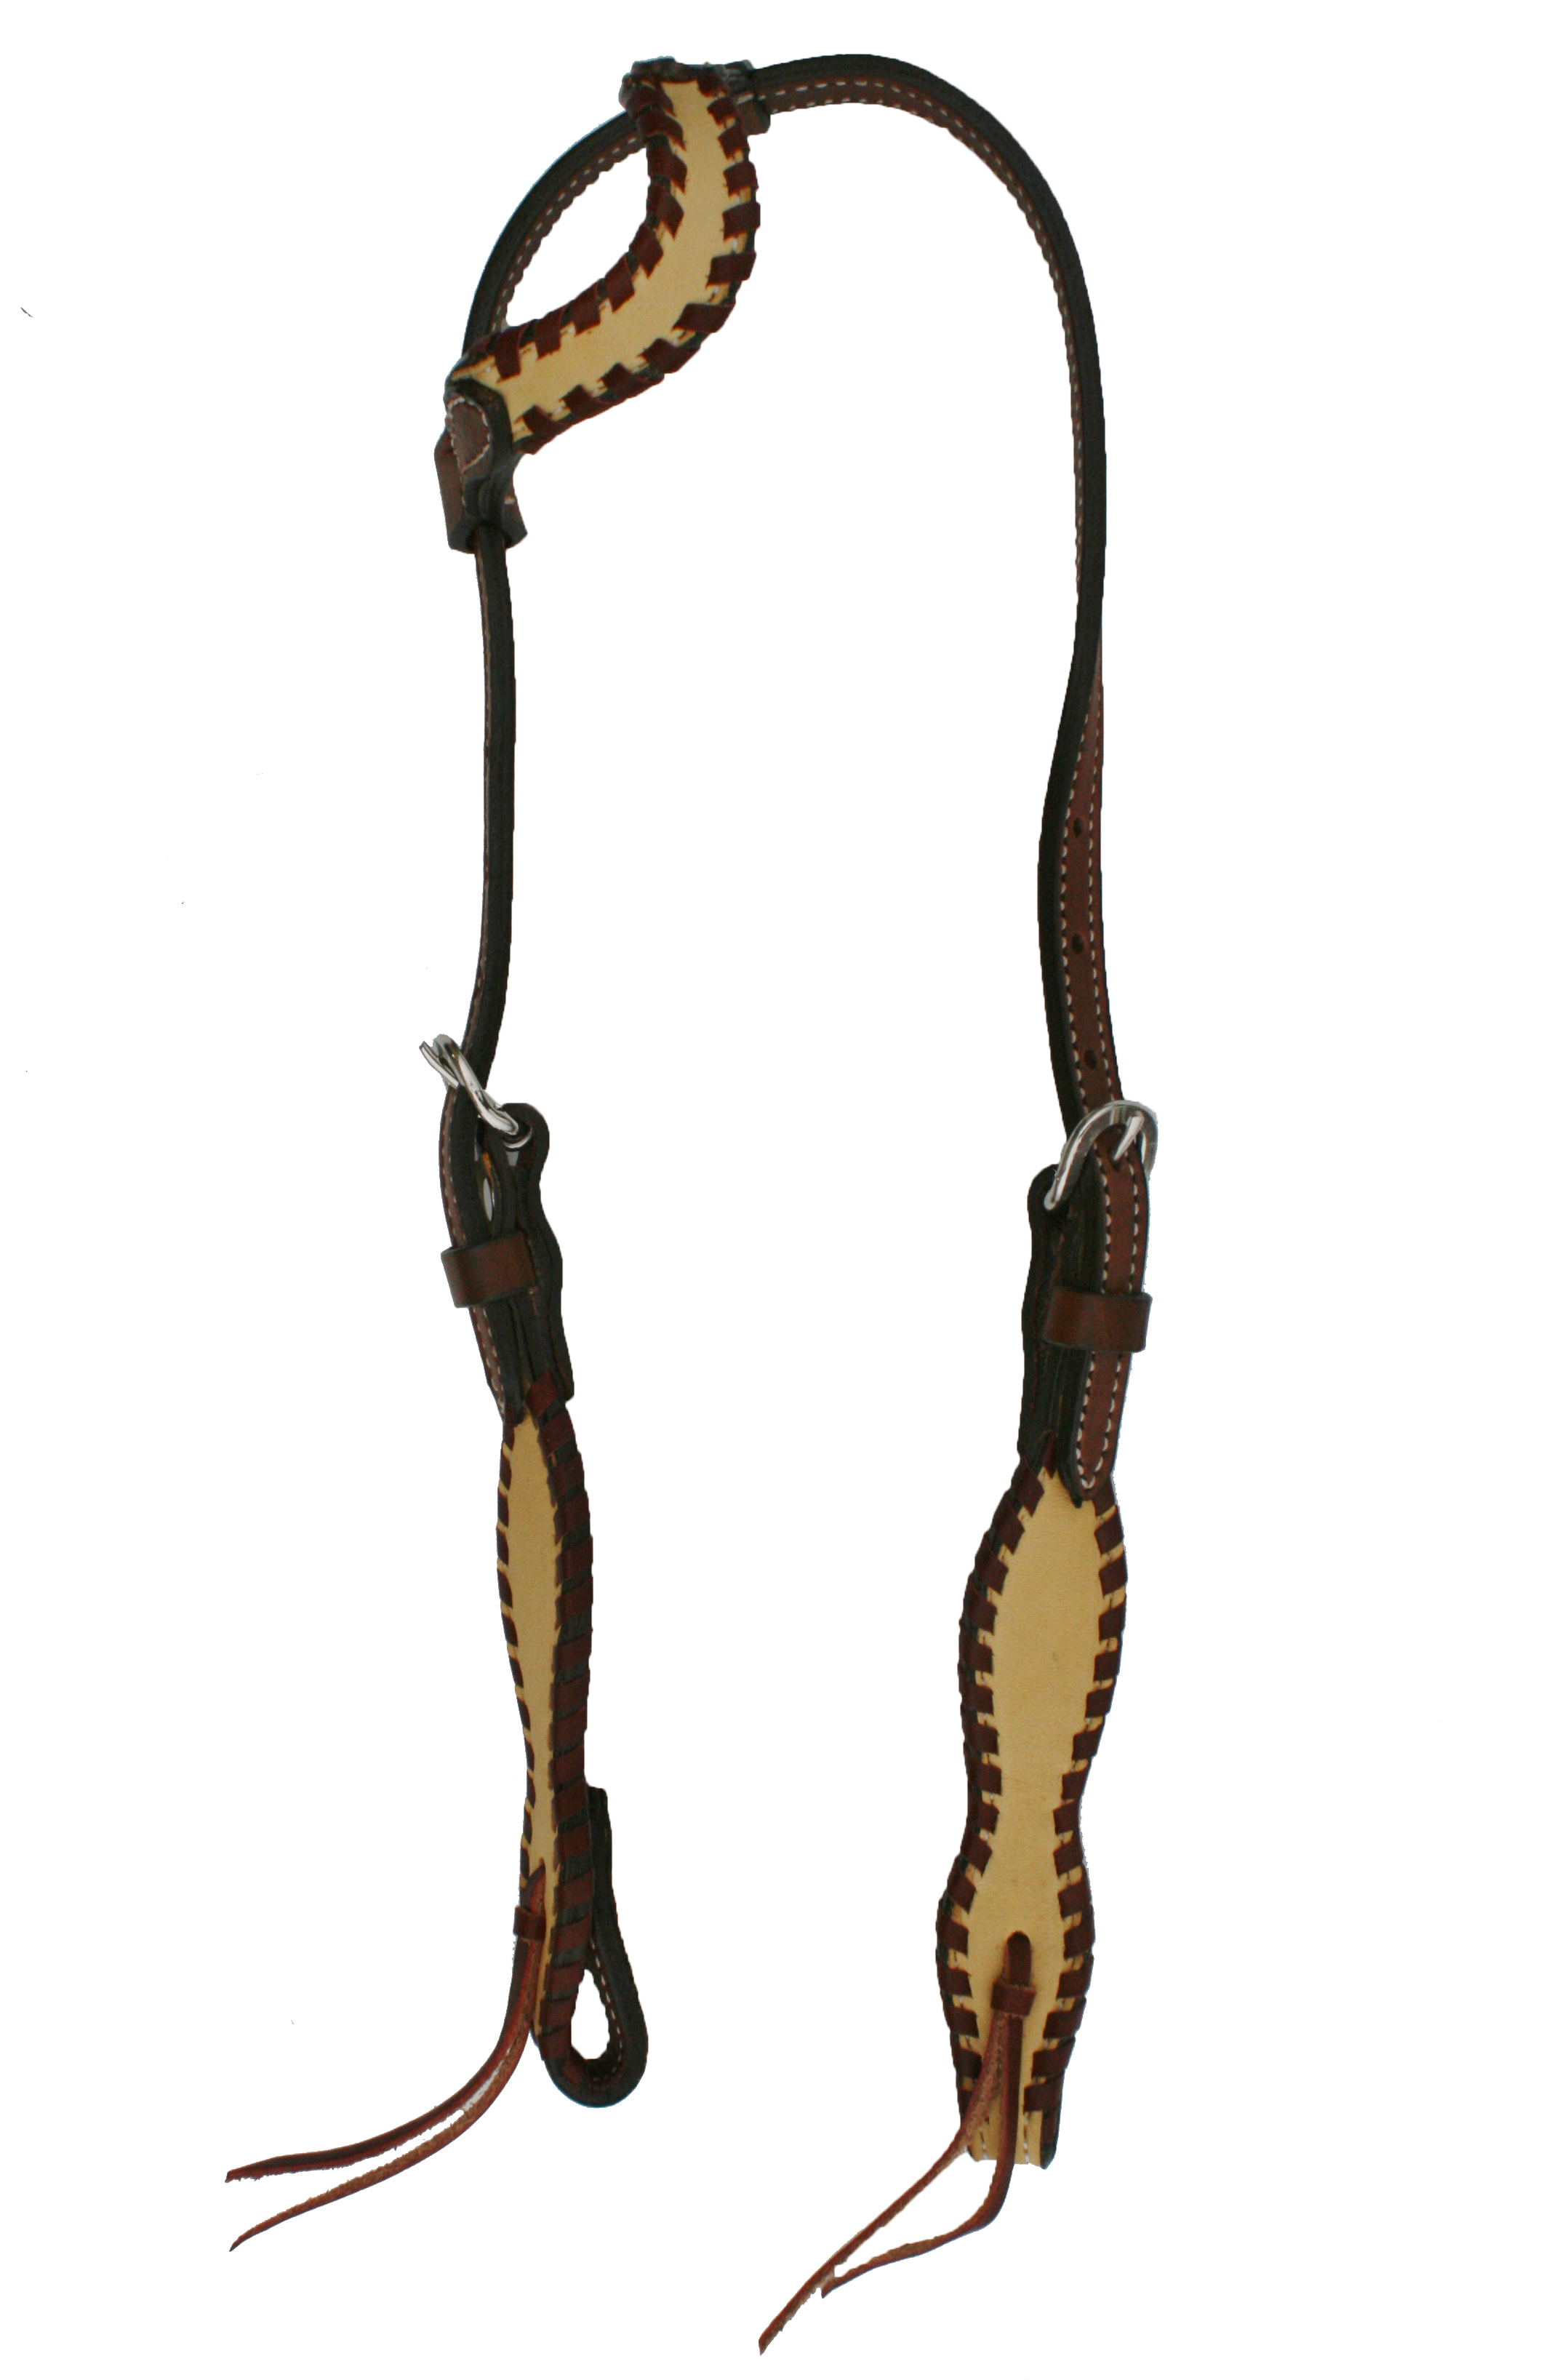 2074-WH ONE EAR HEADSTALL w PALOMINO OVERLAY